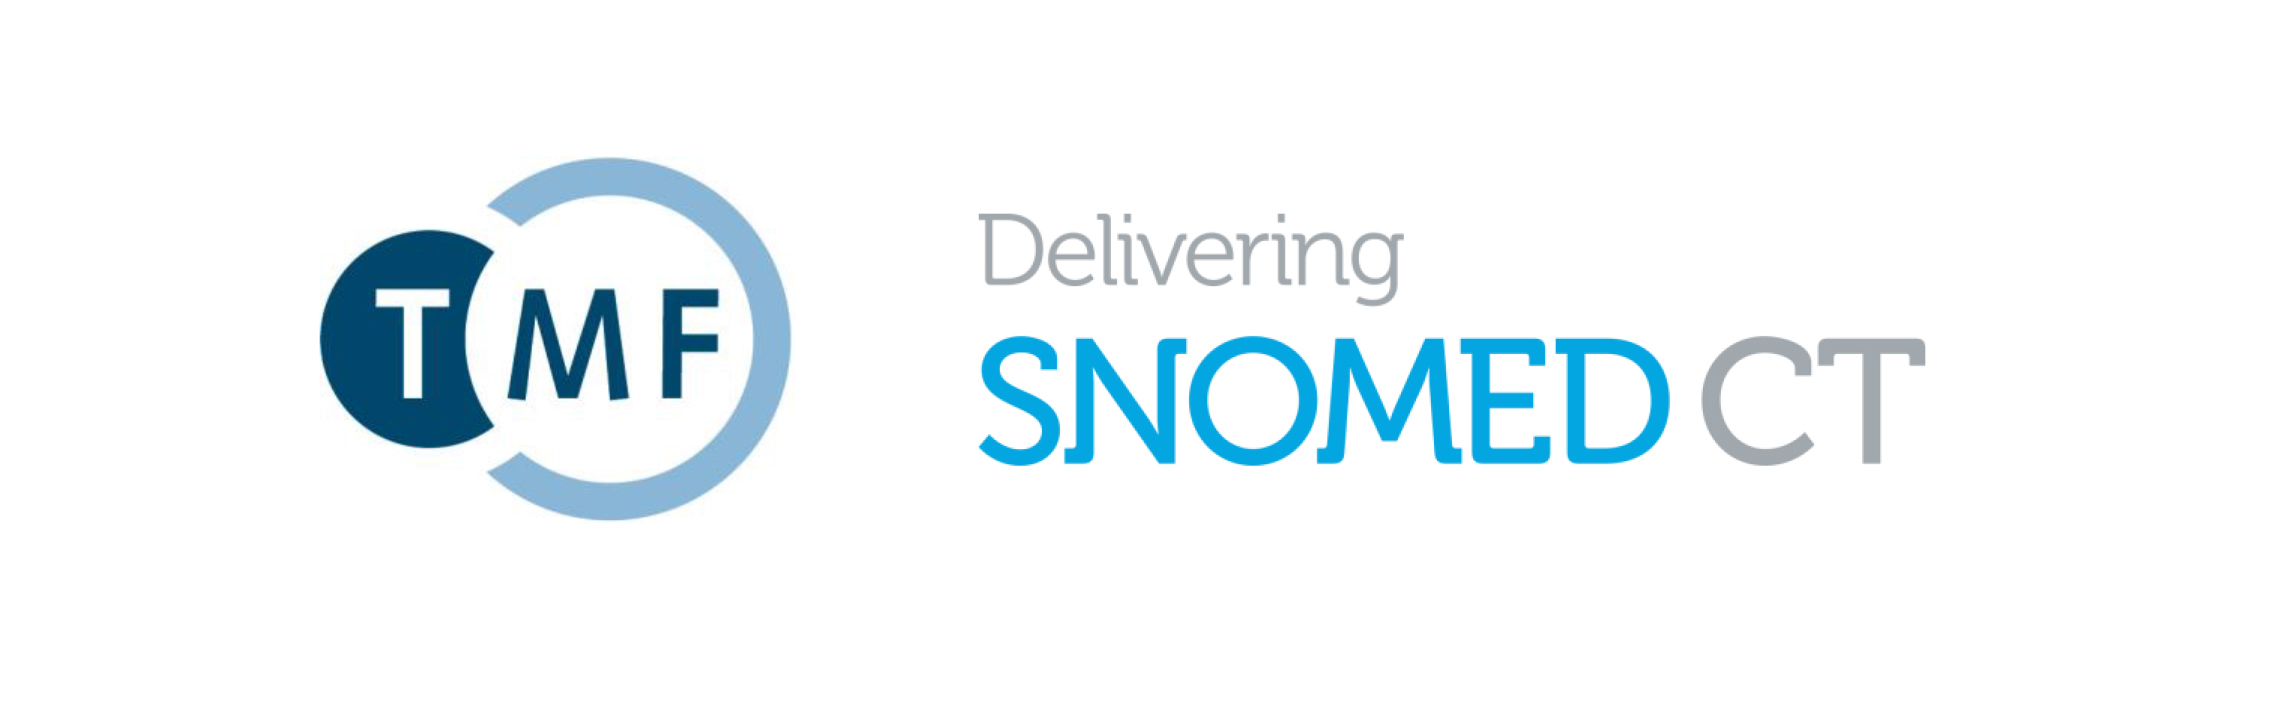 Moodbild_TMF delivering SNOMED